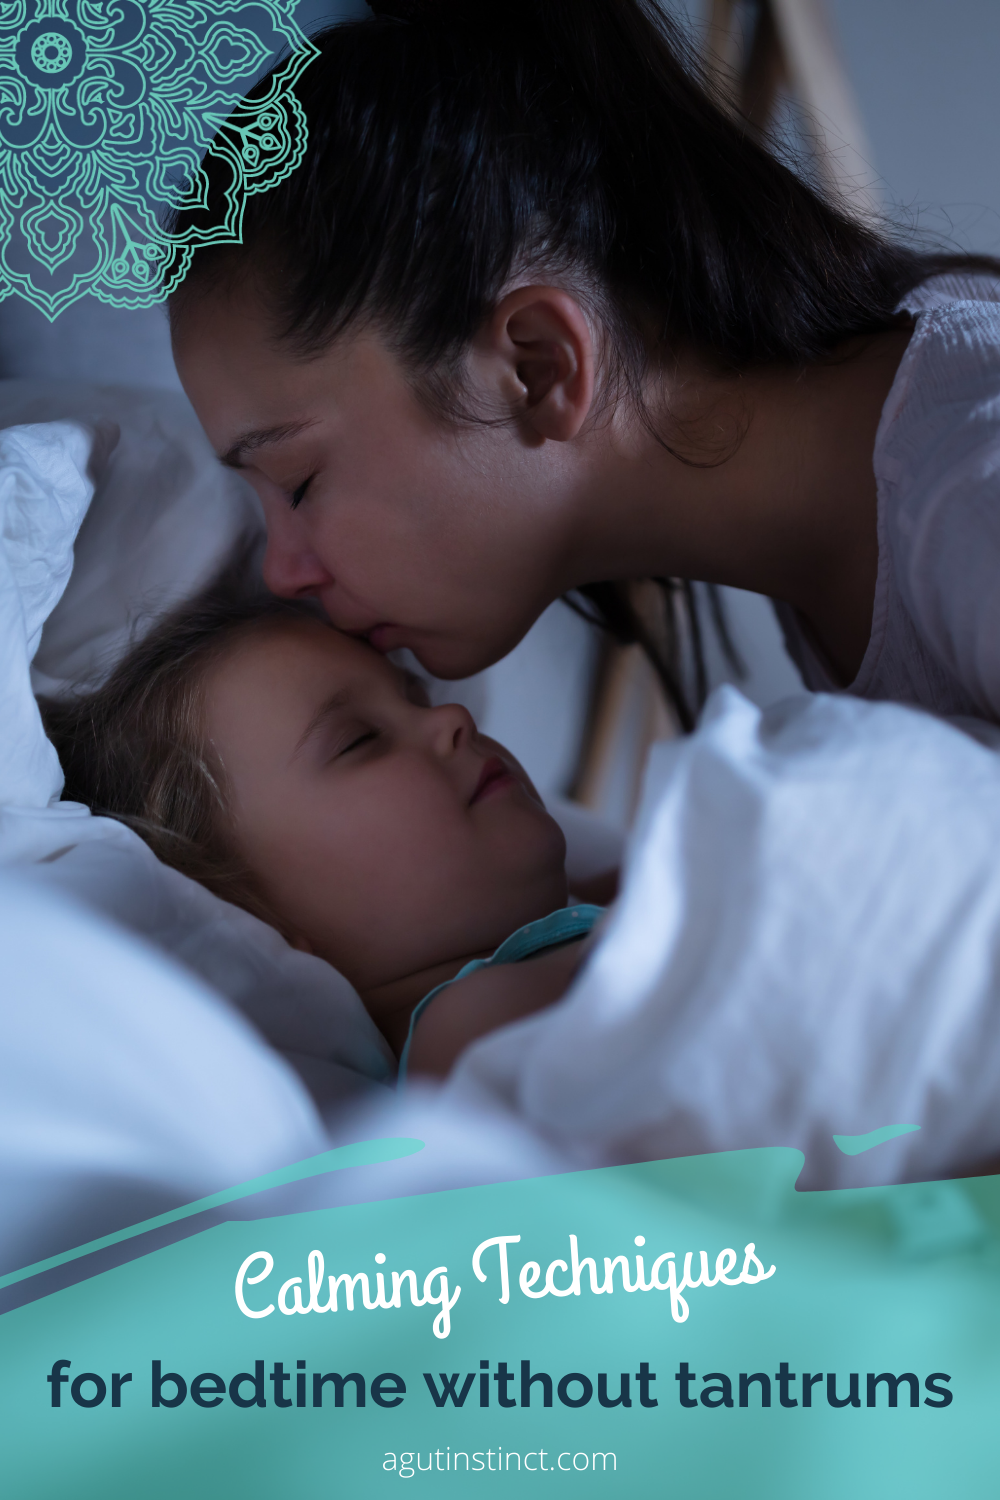 The text says Calming Techniques for bedtime without tantrums and is overlaid on a photo of a woman tucking her child into bed and kissing her child on the forehead